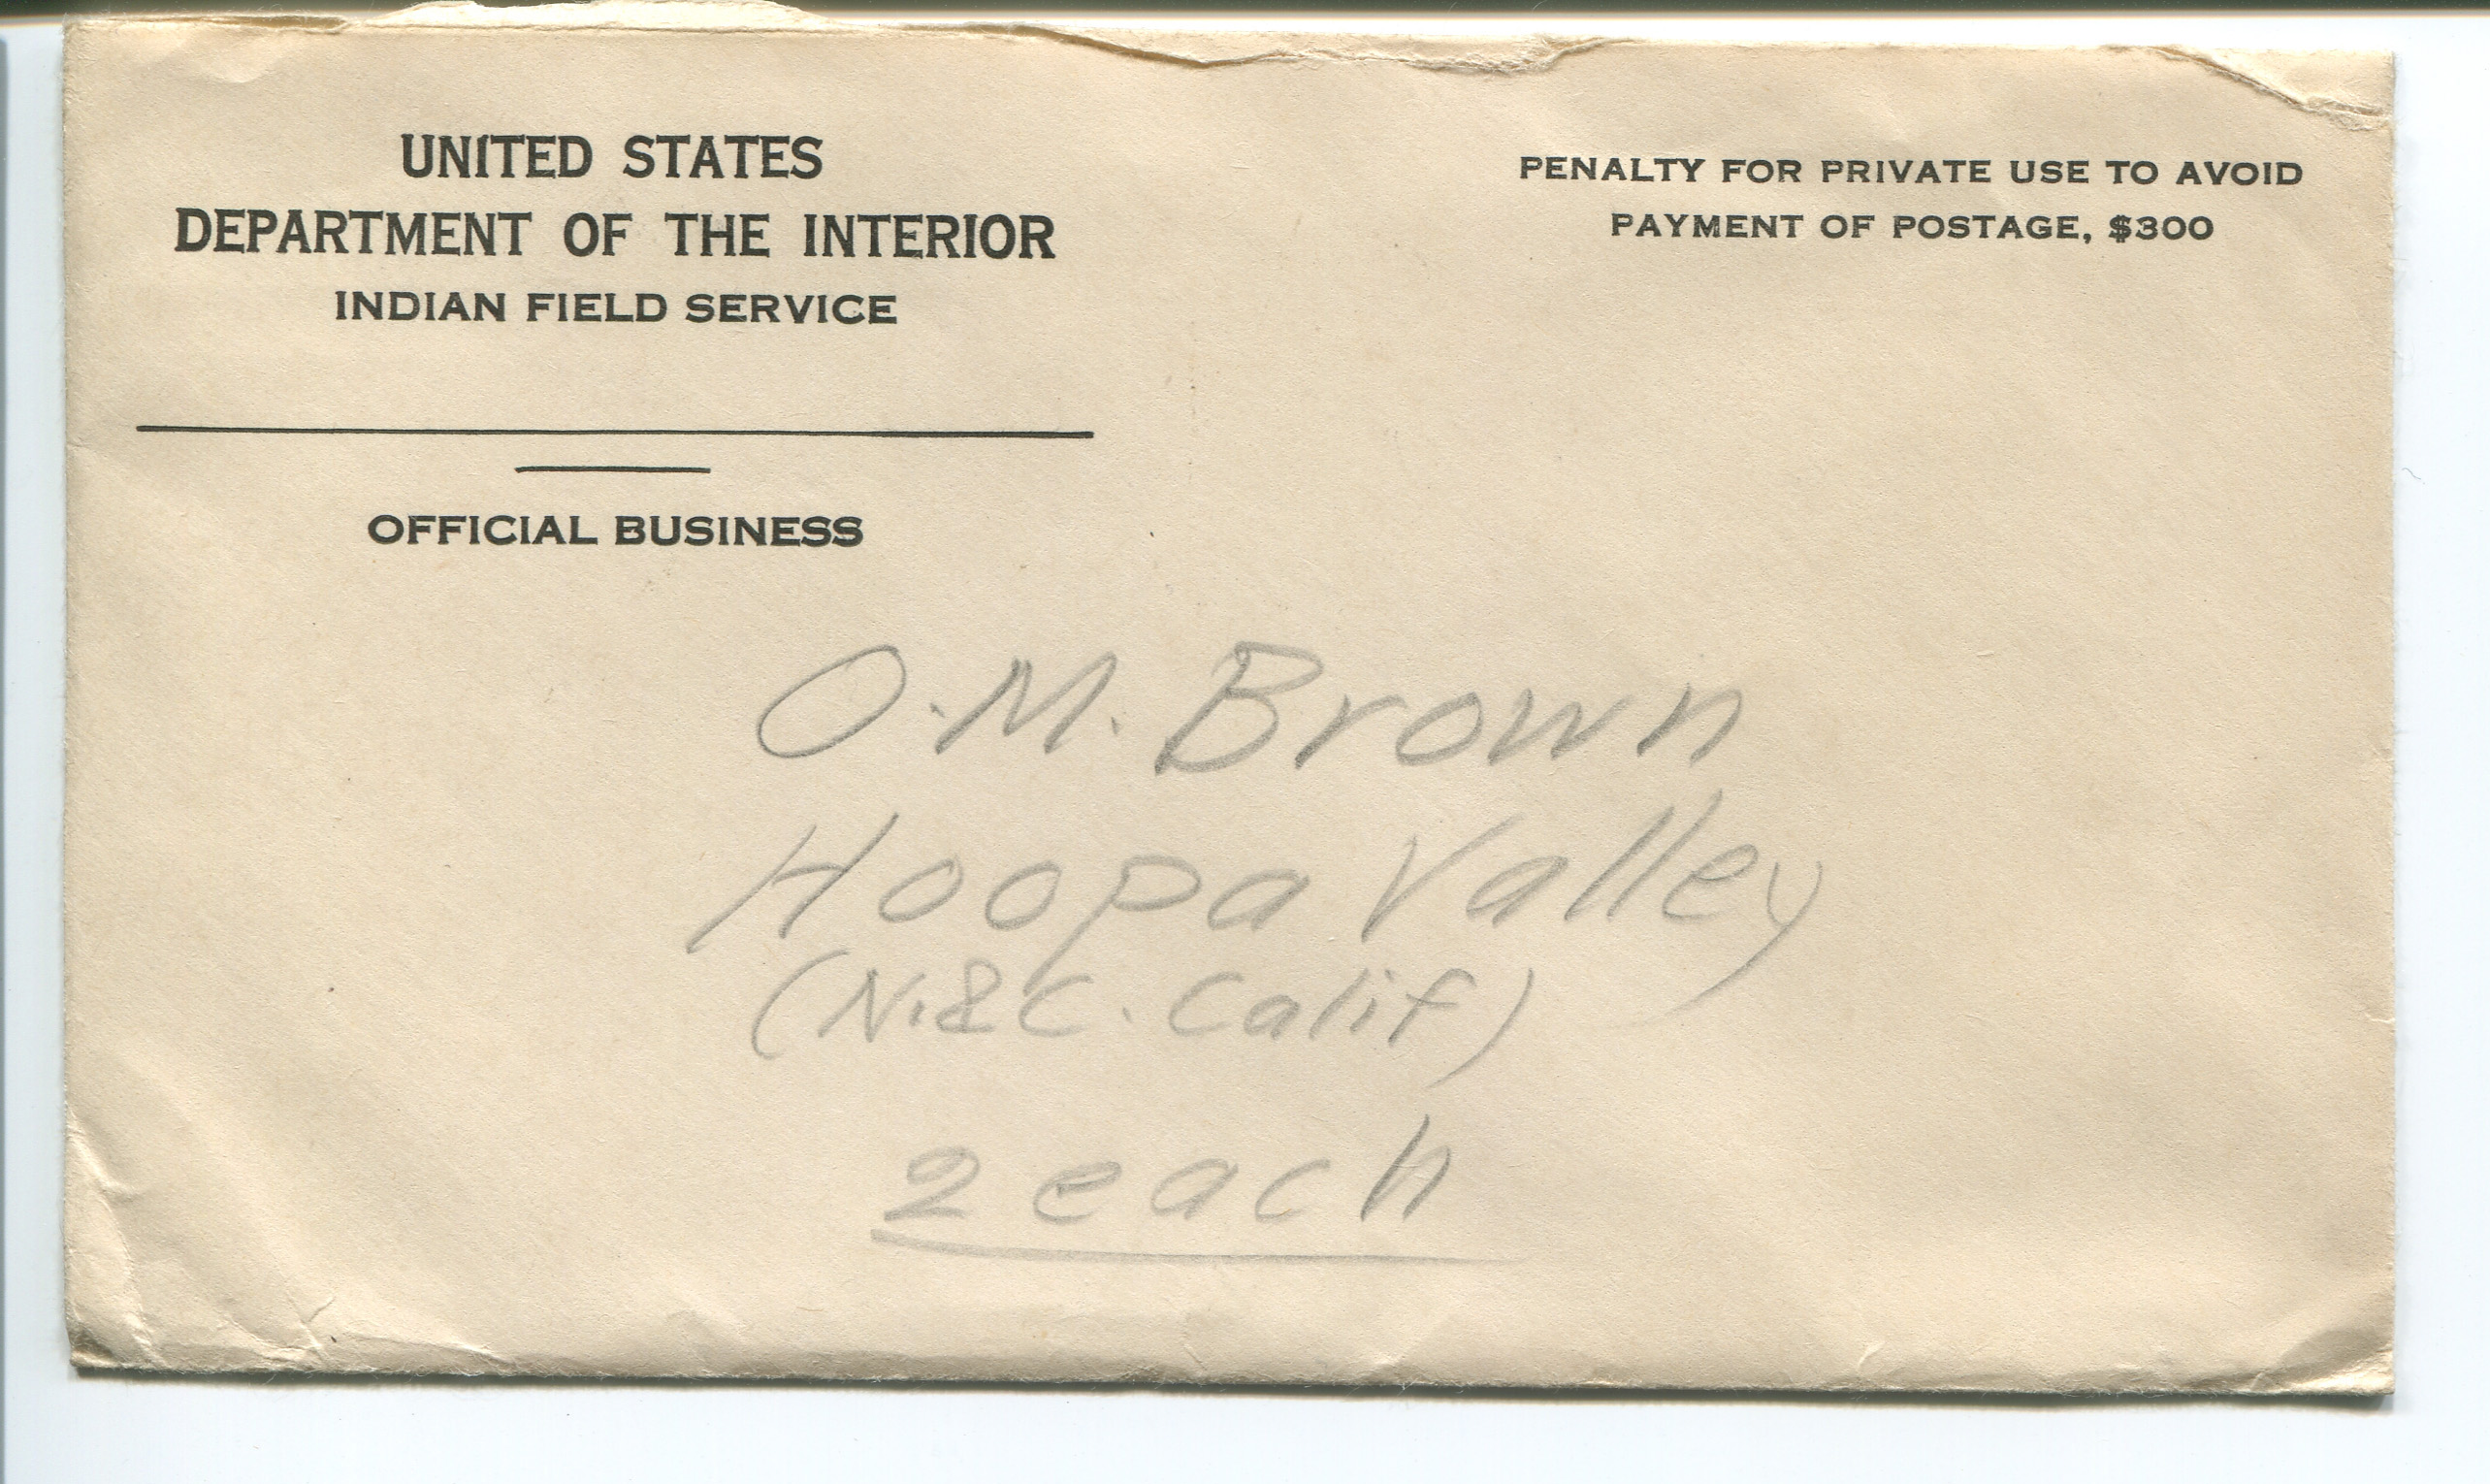 file envelope from united states department of the interior indian field service to o m brown. Black Bedroom Furniture Sets. Home Design Ideas